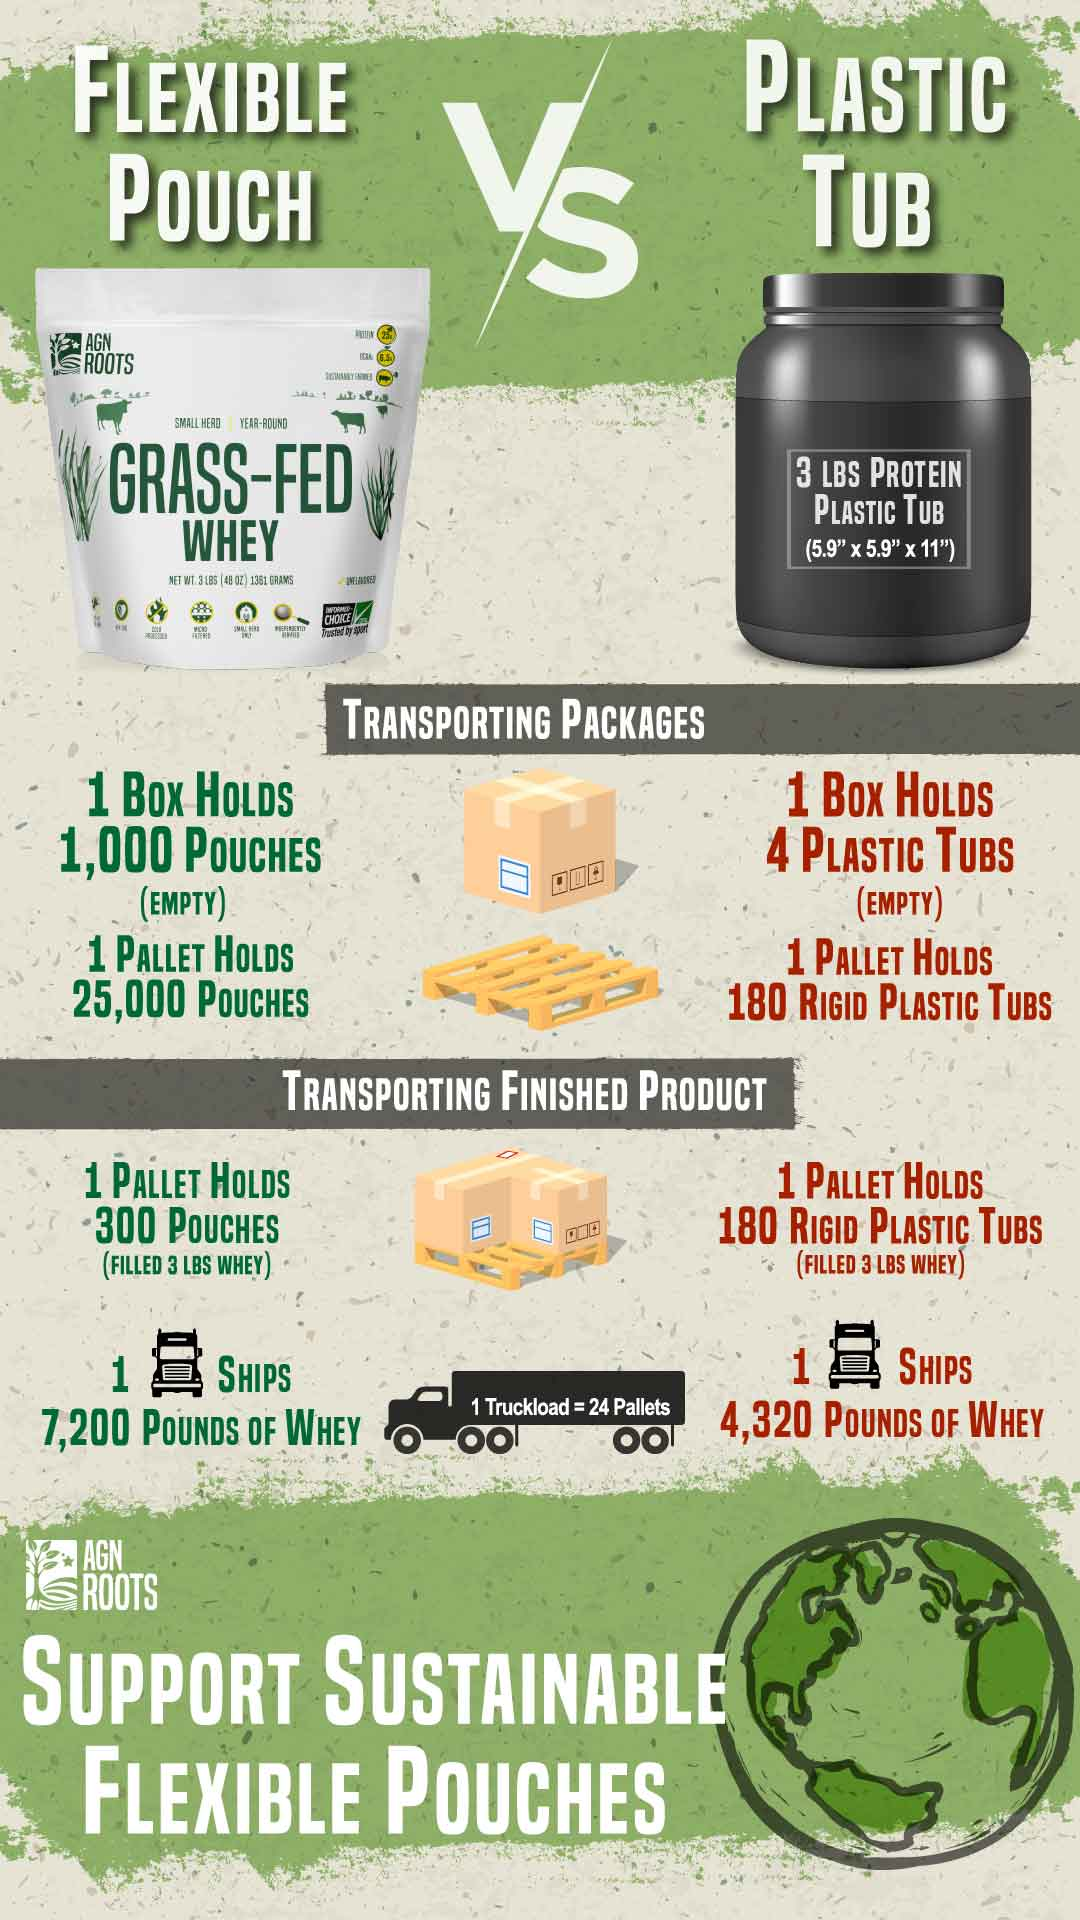 AGN Roots Packaging is Sustainable and drastically reduces carbon emissions compared to rigid plastic tubs